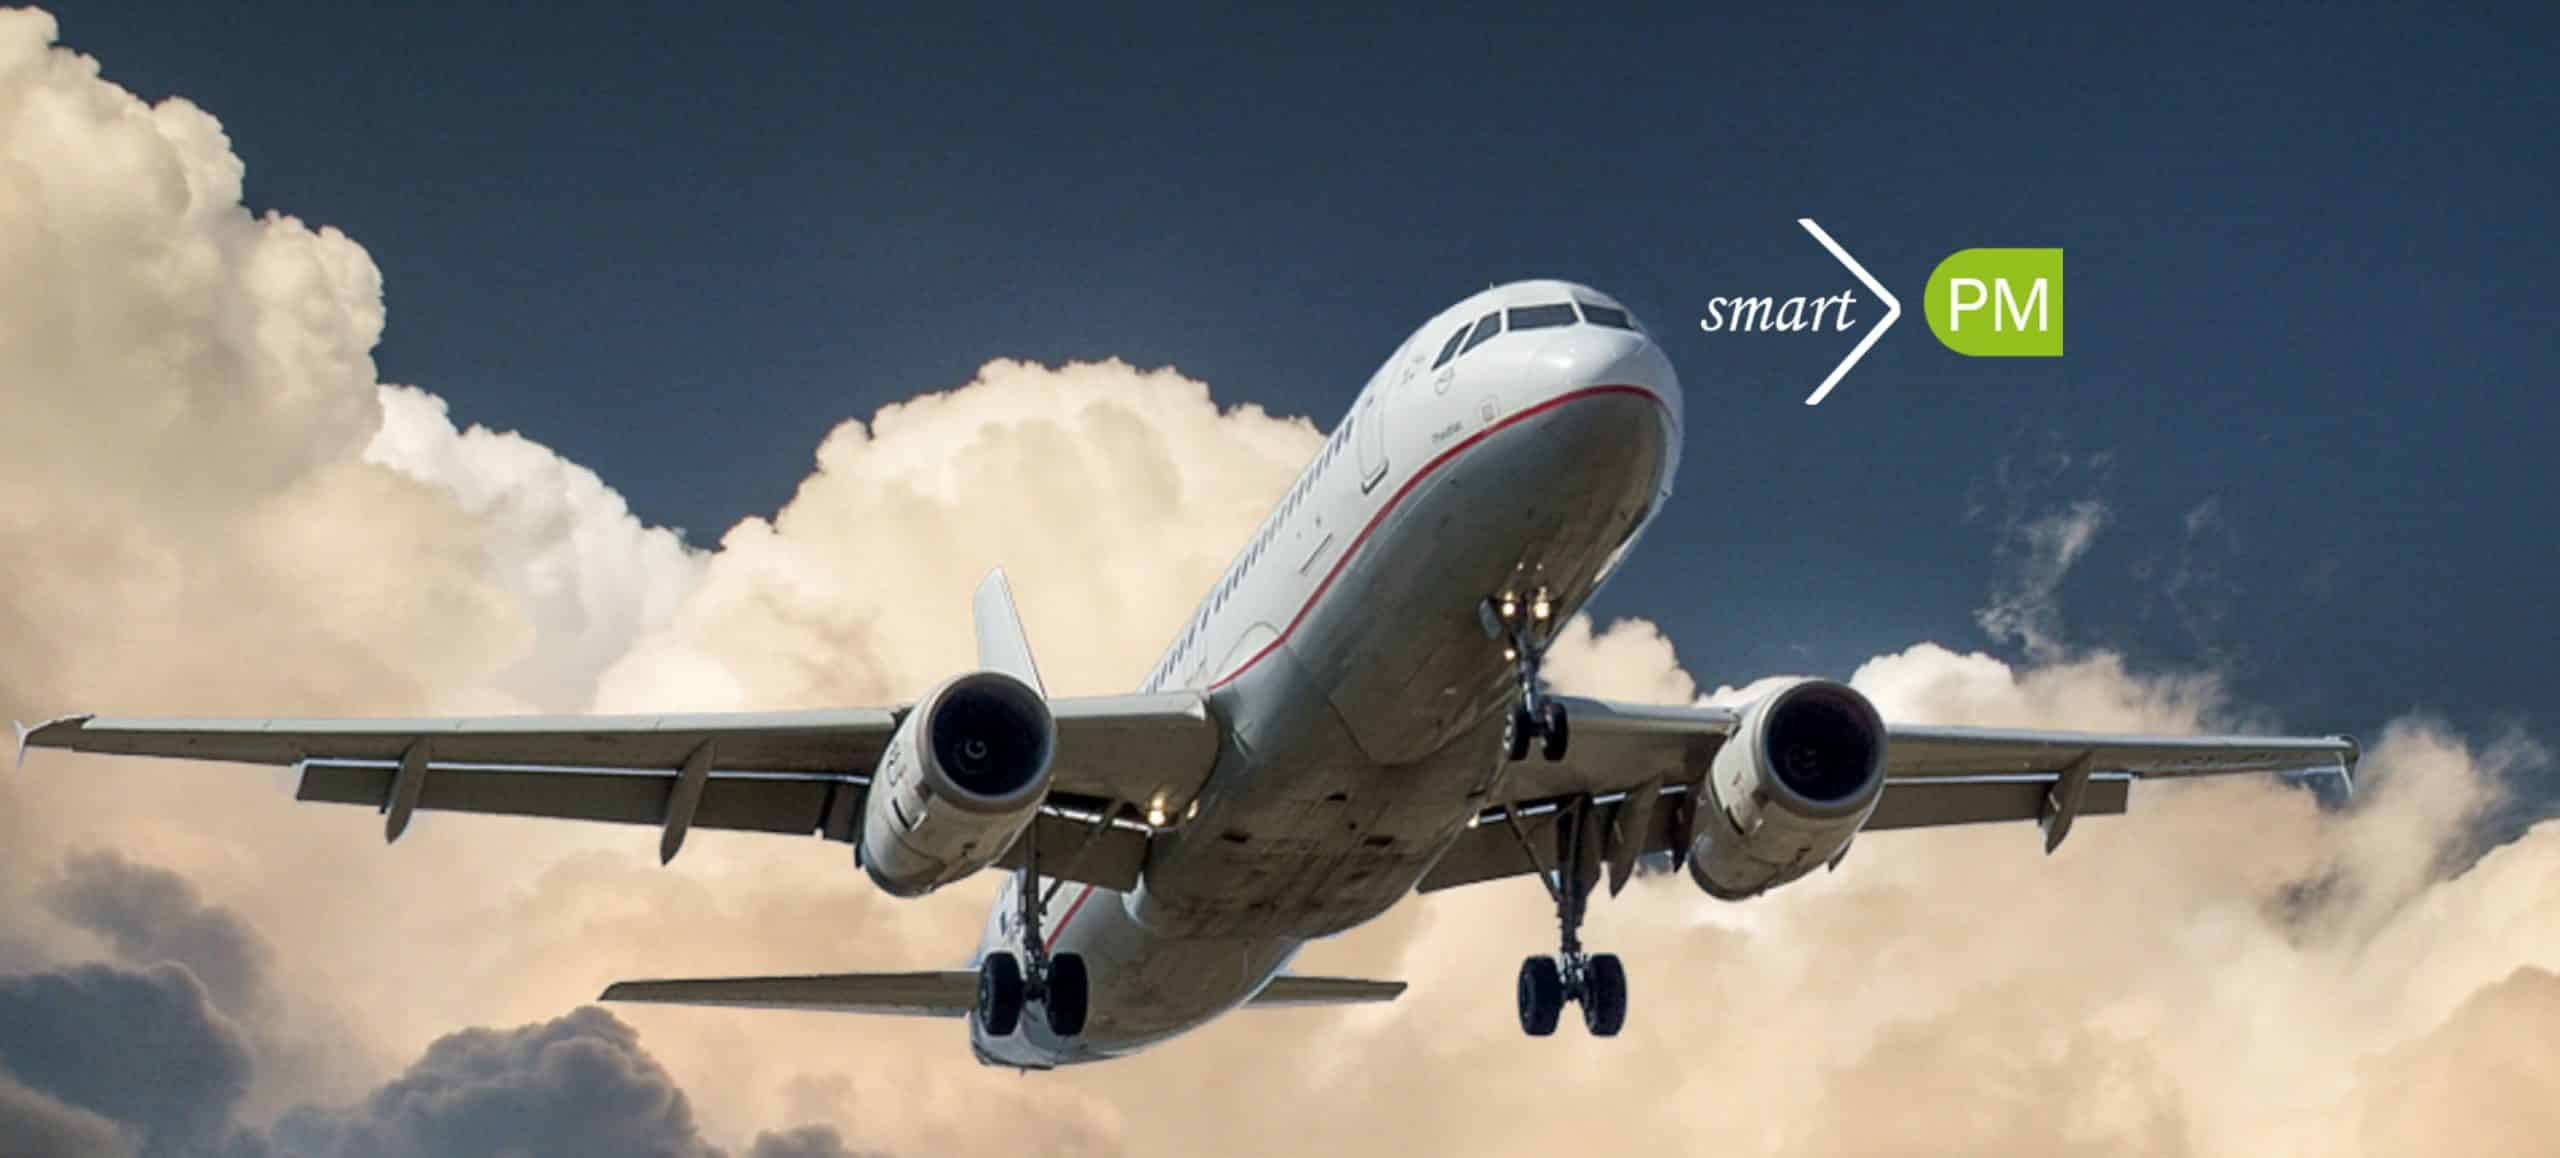 Air Plane smartPM solutions Consultants travel climate neutral